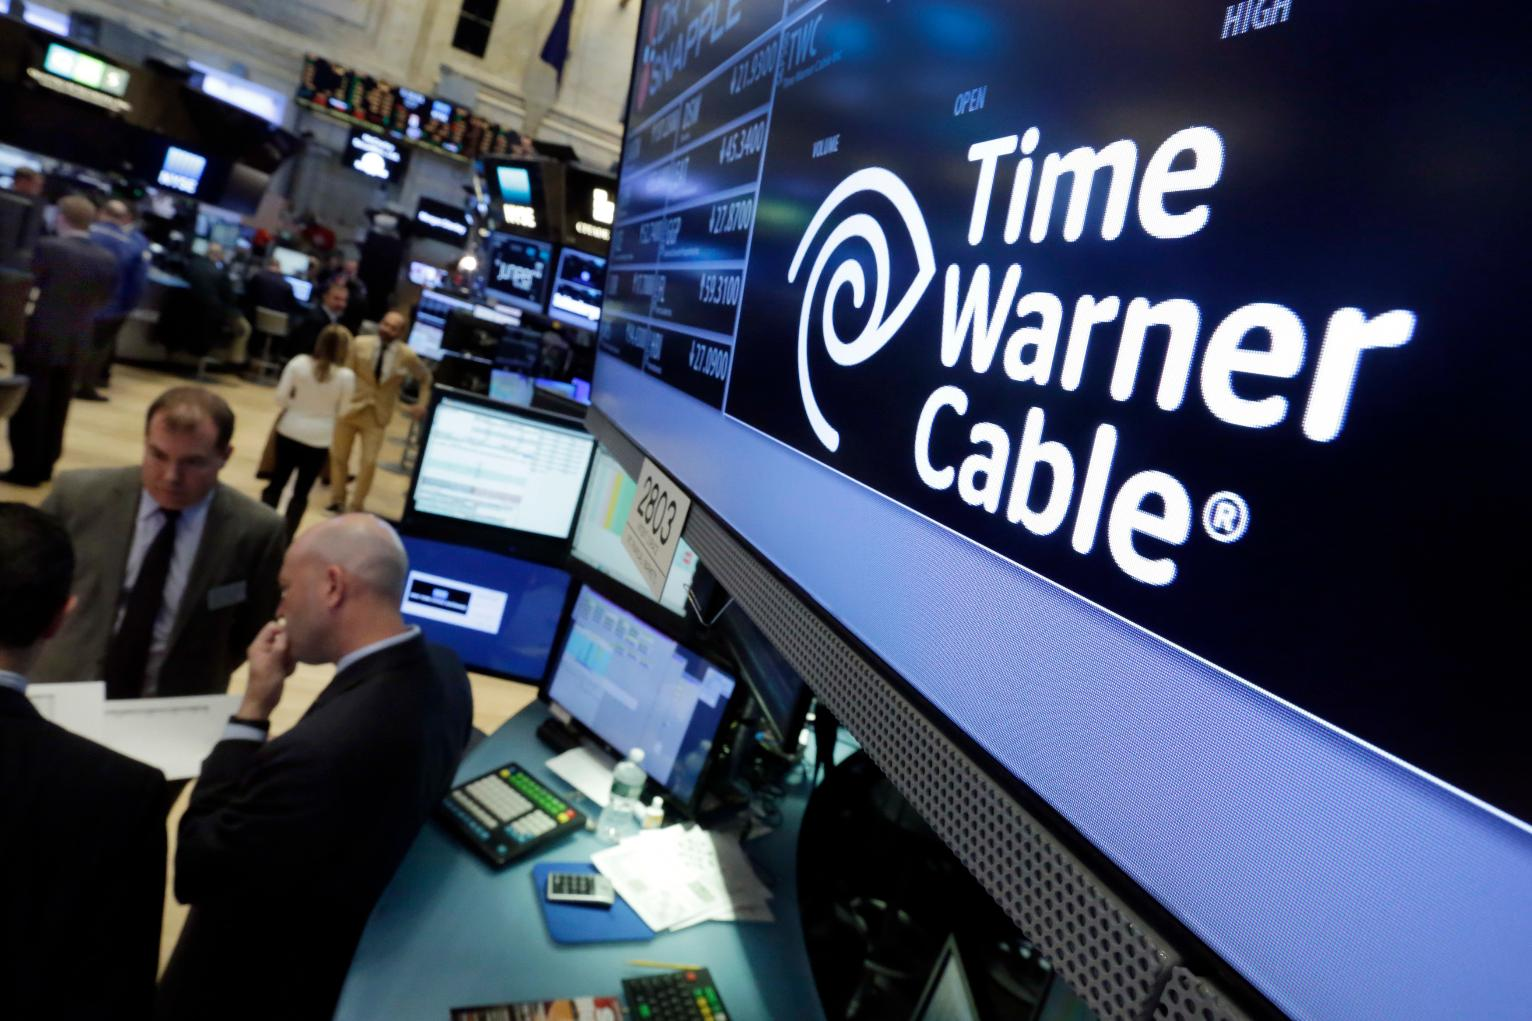 Say goodbye to time warner cable sale leads to name change say goodbye to time warner cable sale leads to name change technology news us news buycottarizona Image collections